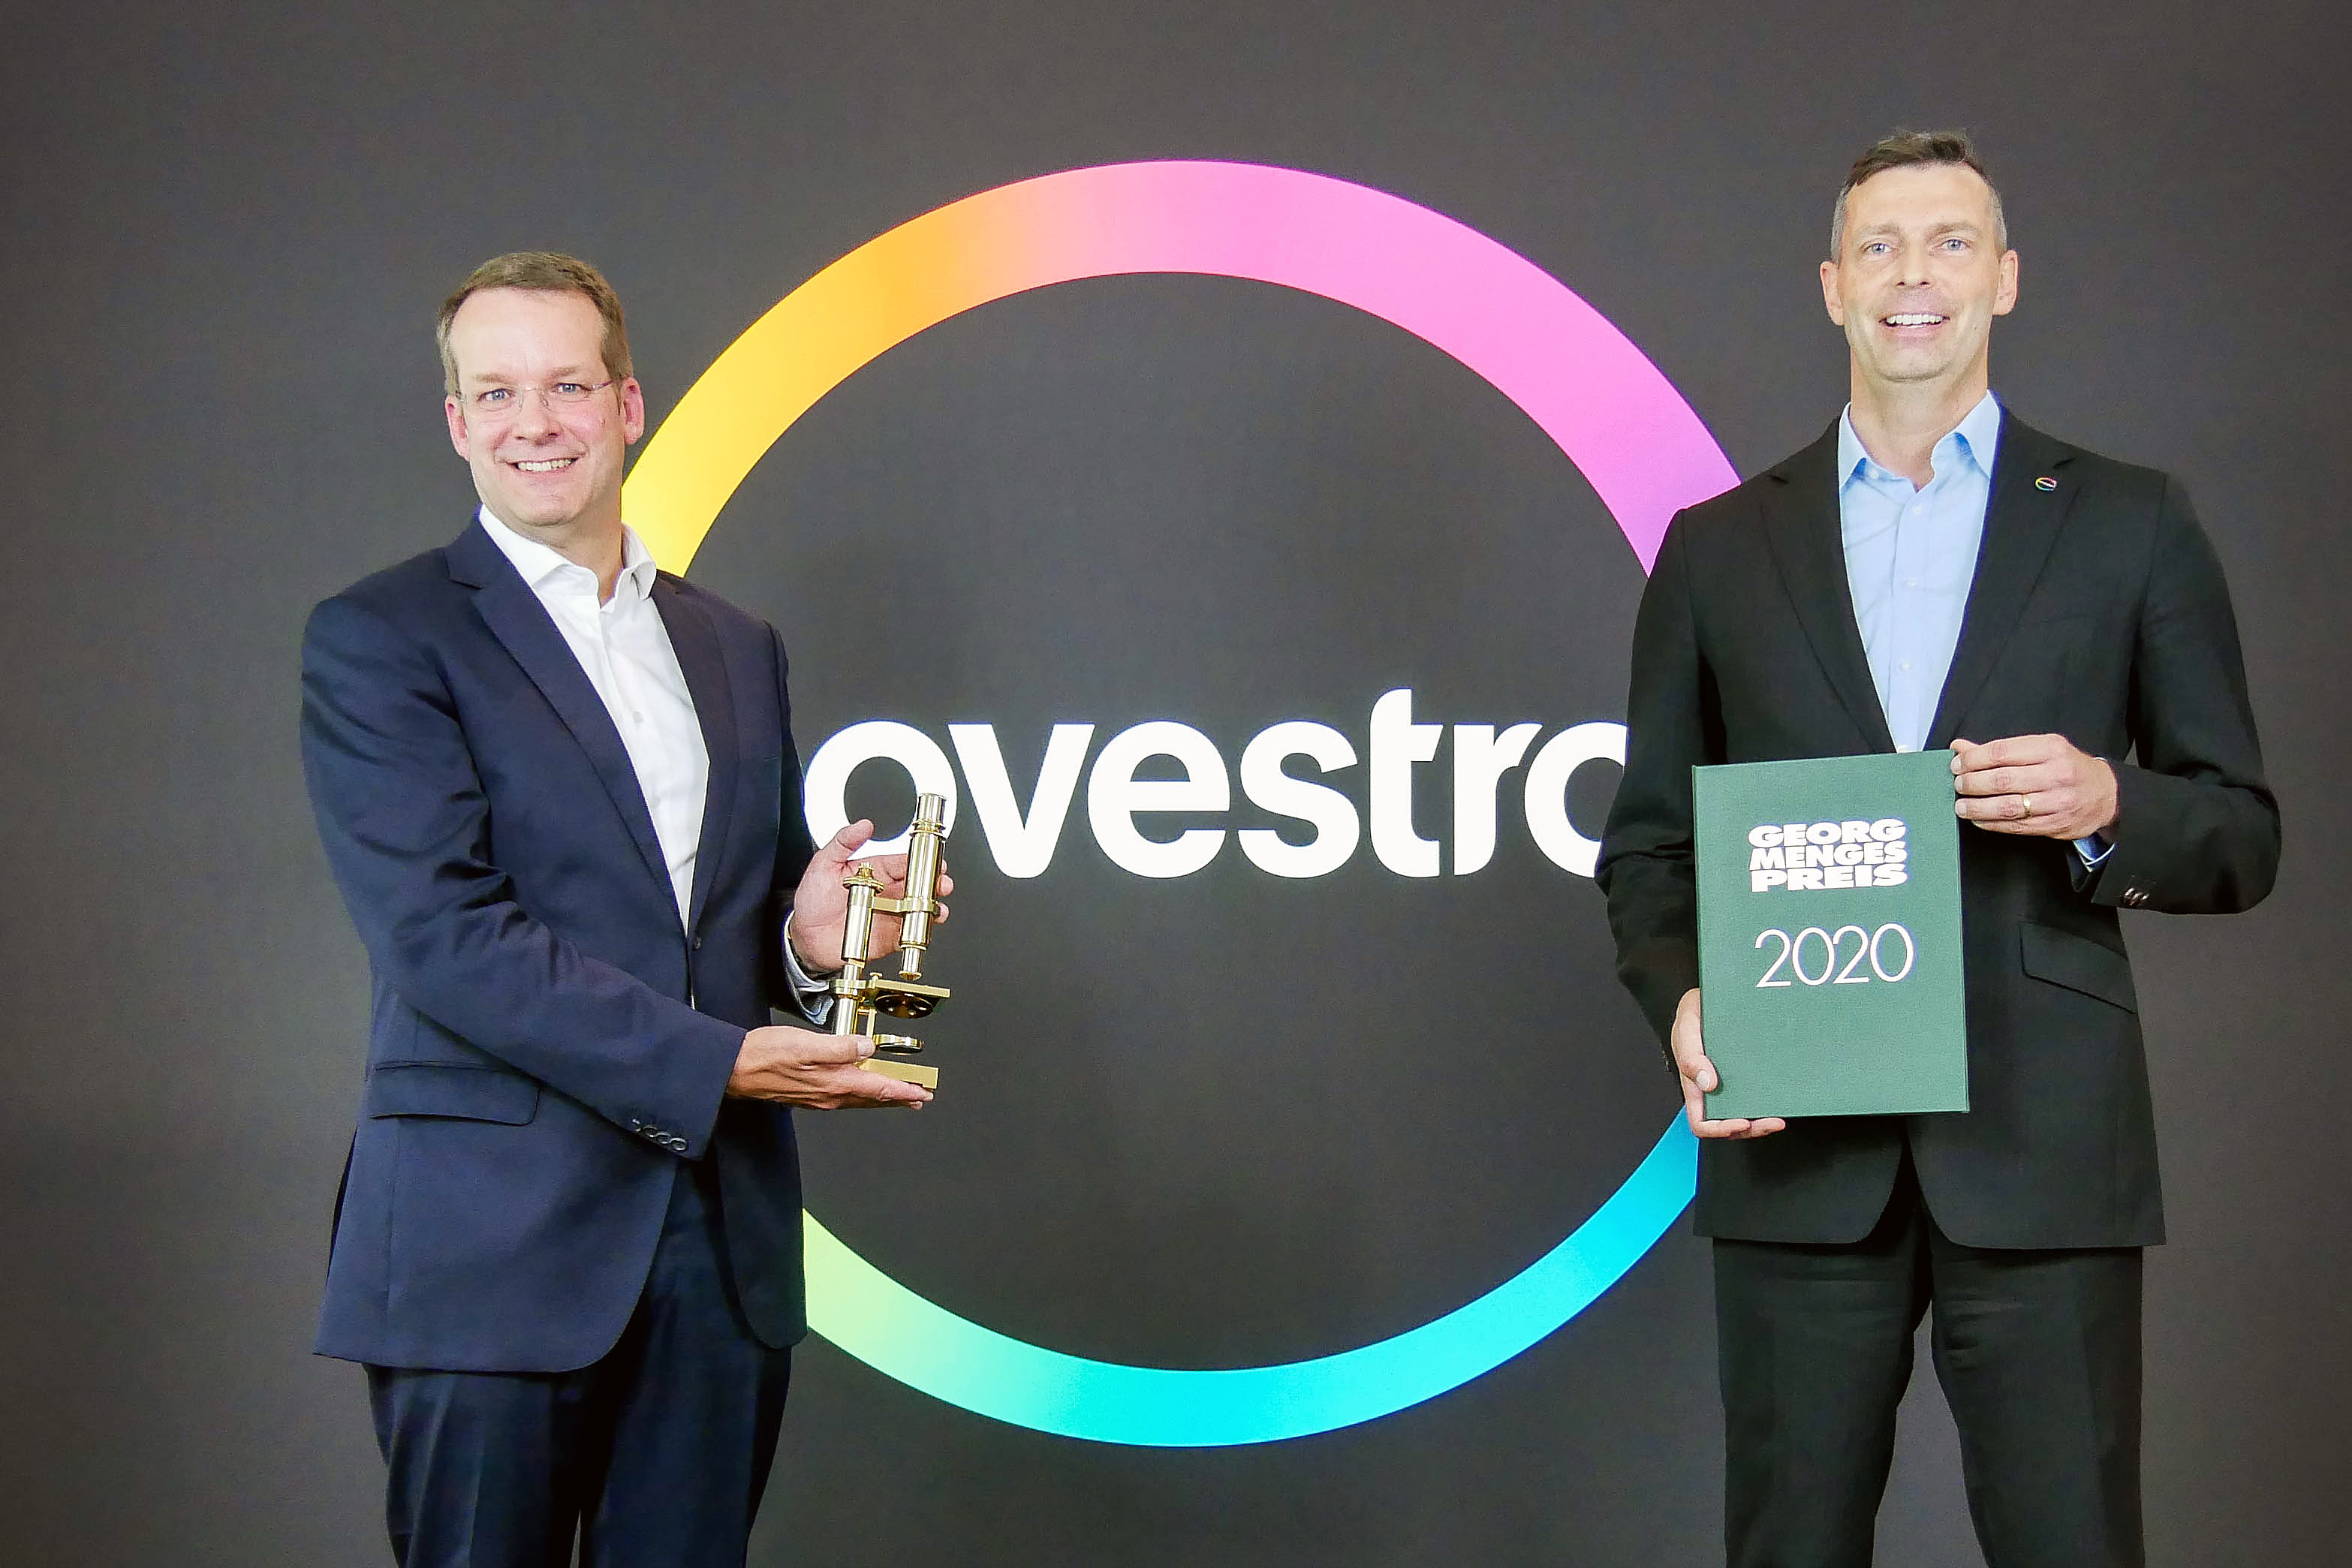 Prof. Dr.-Ing. Christian Hopmann, head of IKV and Managing Director of IKV's Association of Sponsors (left), presents the Georg-Menges Prize 2020 to the prize winner, Dr. Markus Steilemann, CEO of Covestro (right). (Source: IKV)